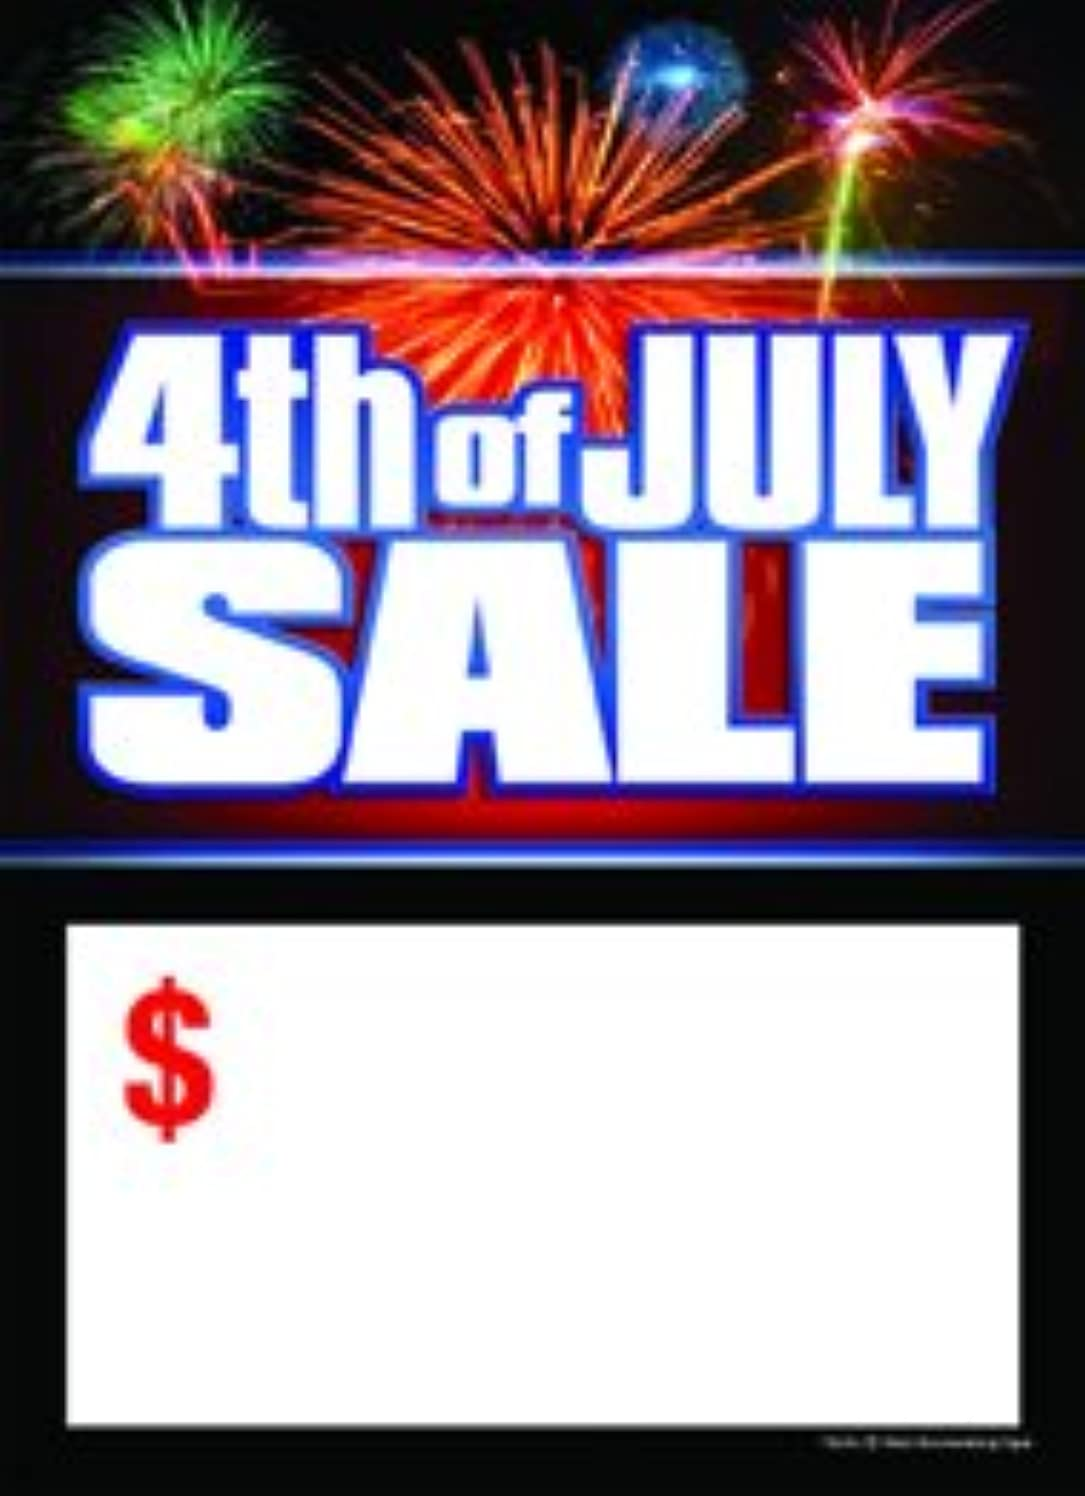 T50JUL Fourth of July Sale Fireworks - Slotted Sale Tags - 5